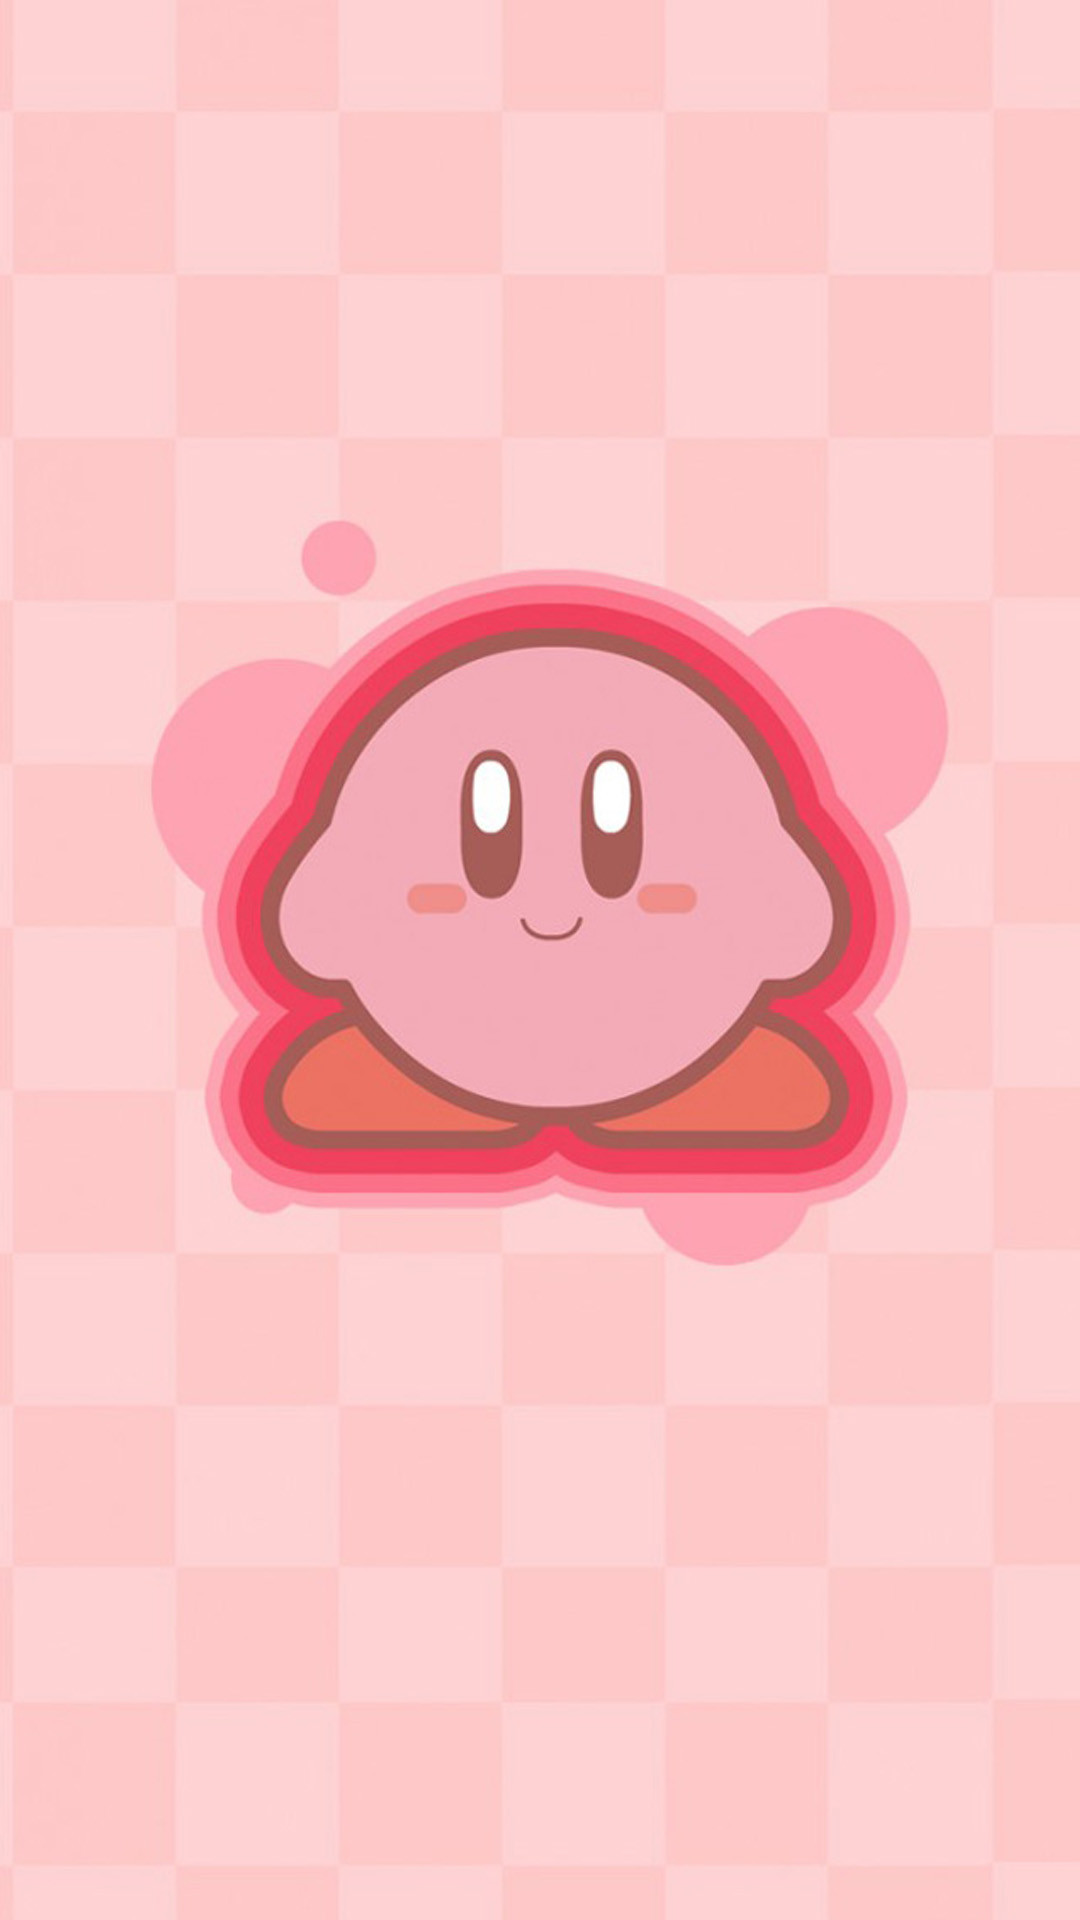 Cute Pink Wallpaper For Iphone 6 Plus Hd Kirby Wallpaper 69 Images